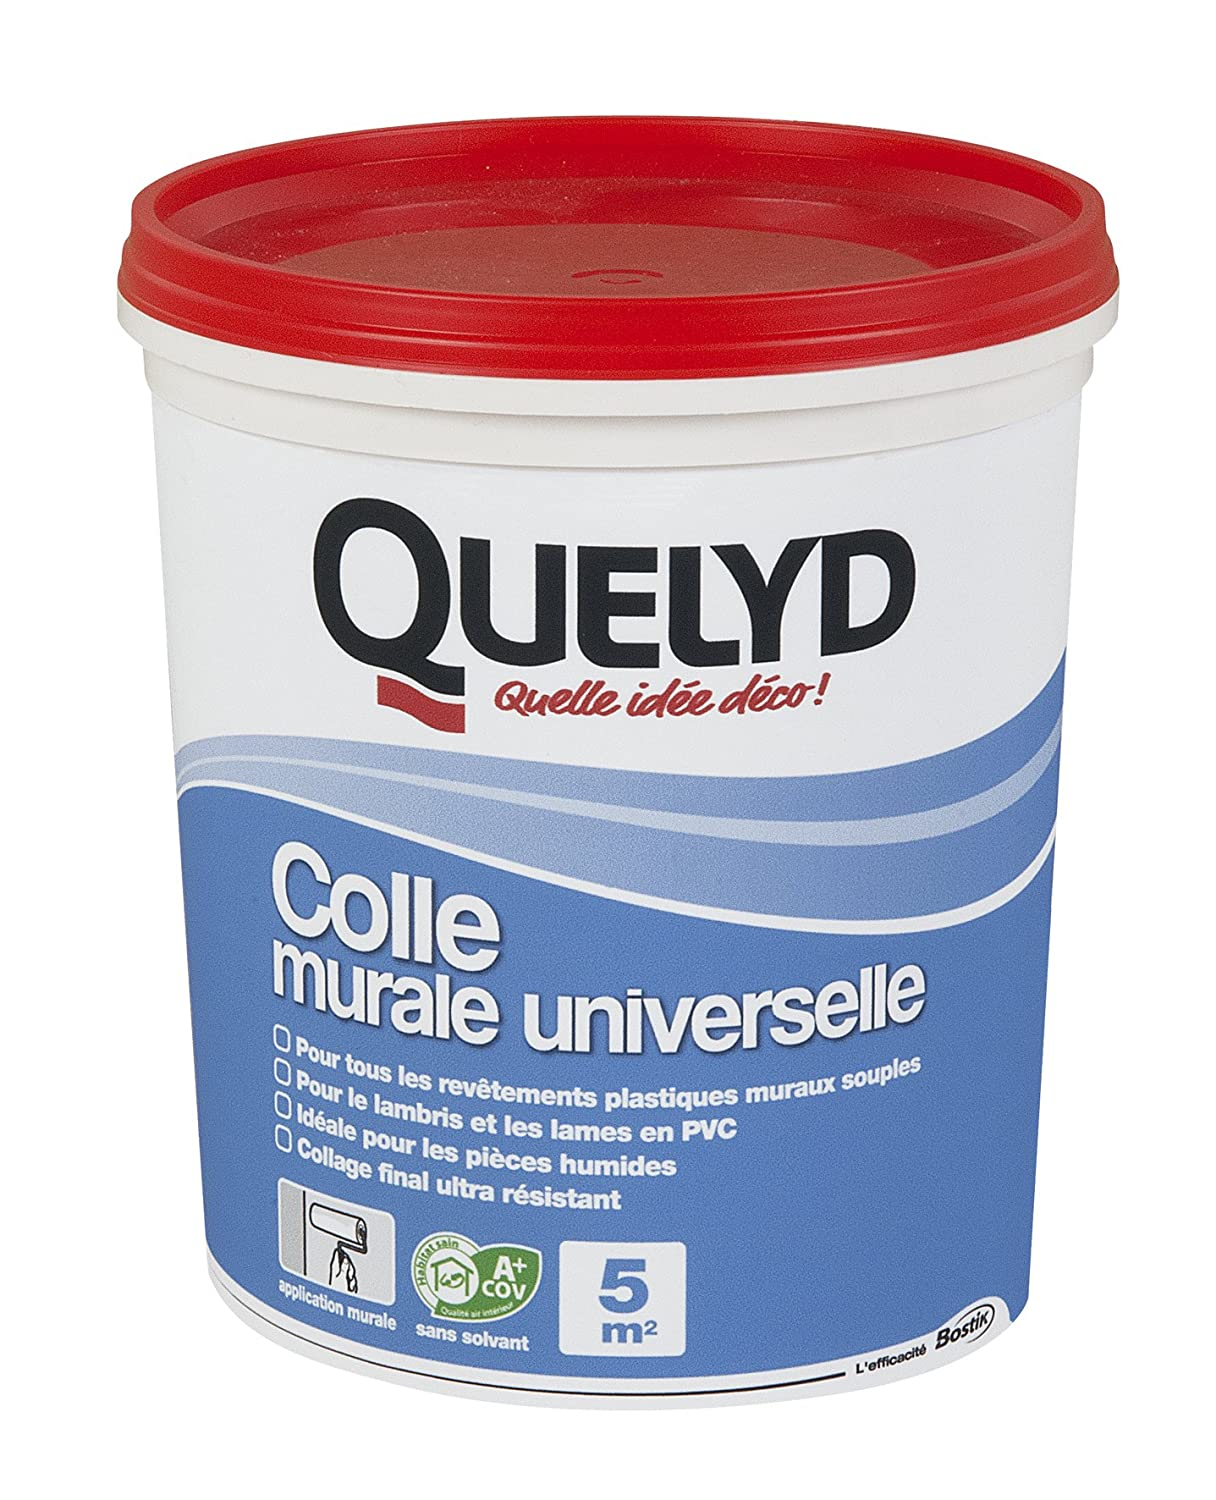 Bostik SA 005005 Colle murale universelle Pot de 1 kg QL005005